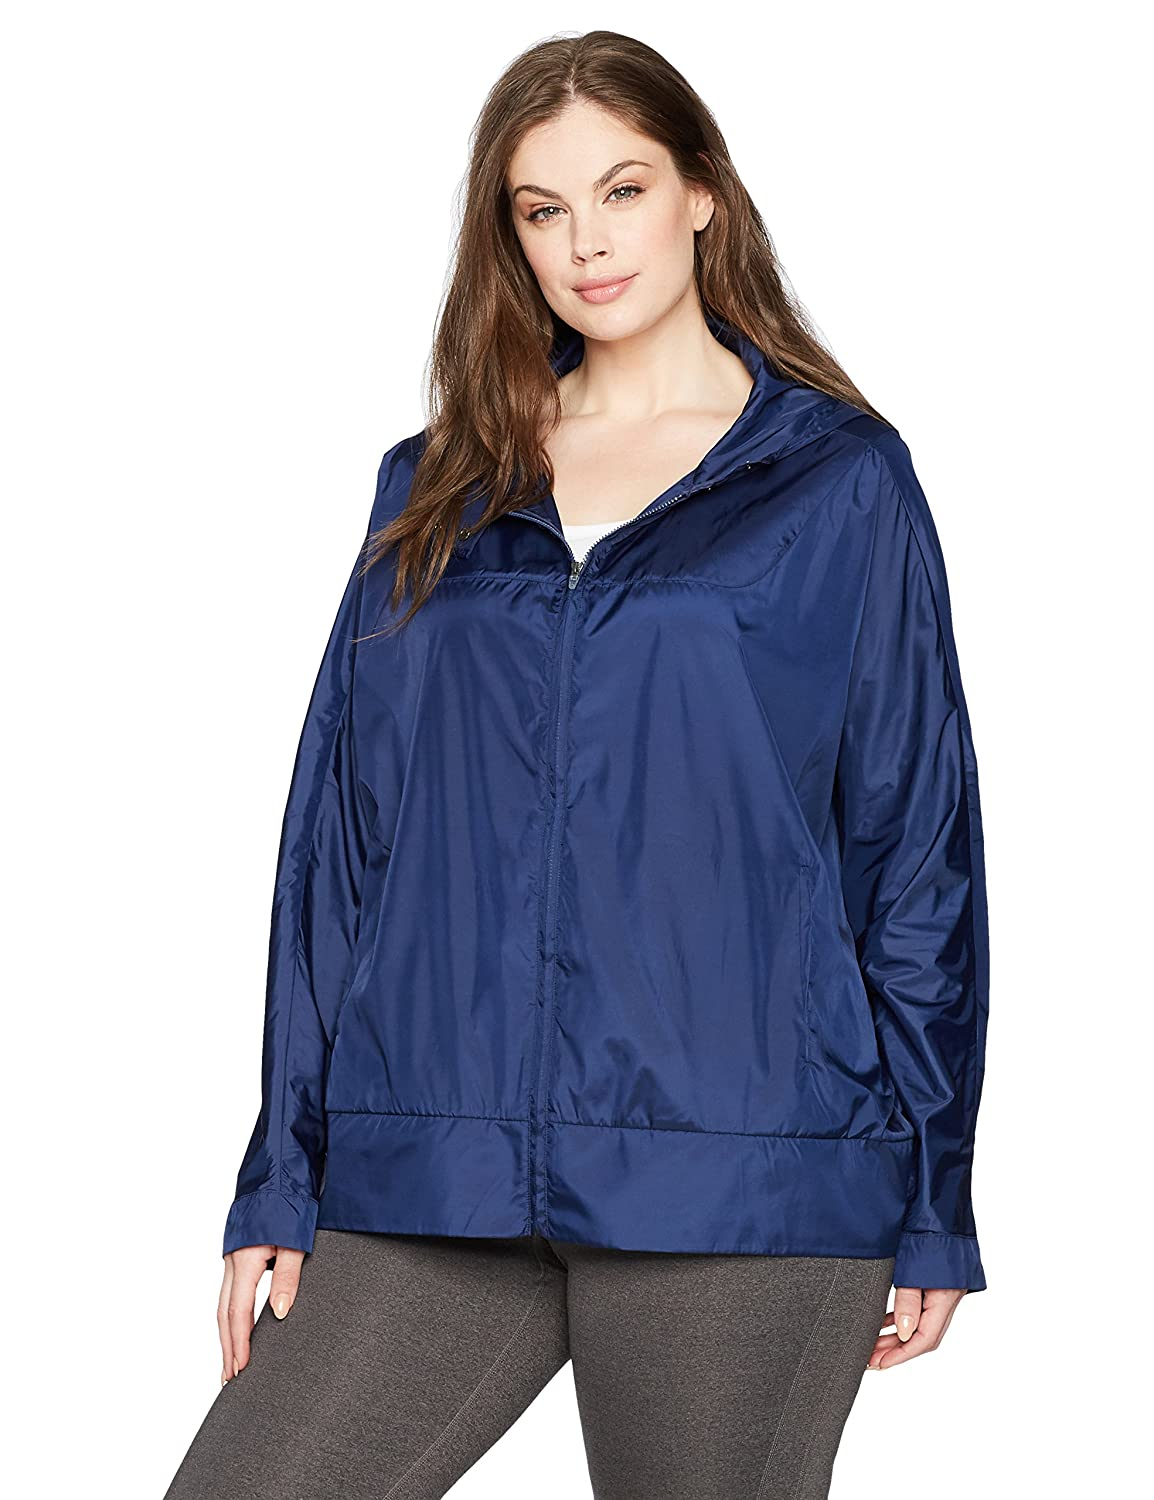 SHAPE activewear Women's Plus Size Breeze Wind Breaker PSU17536